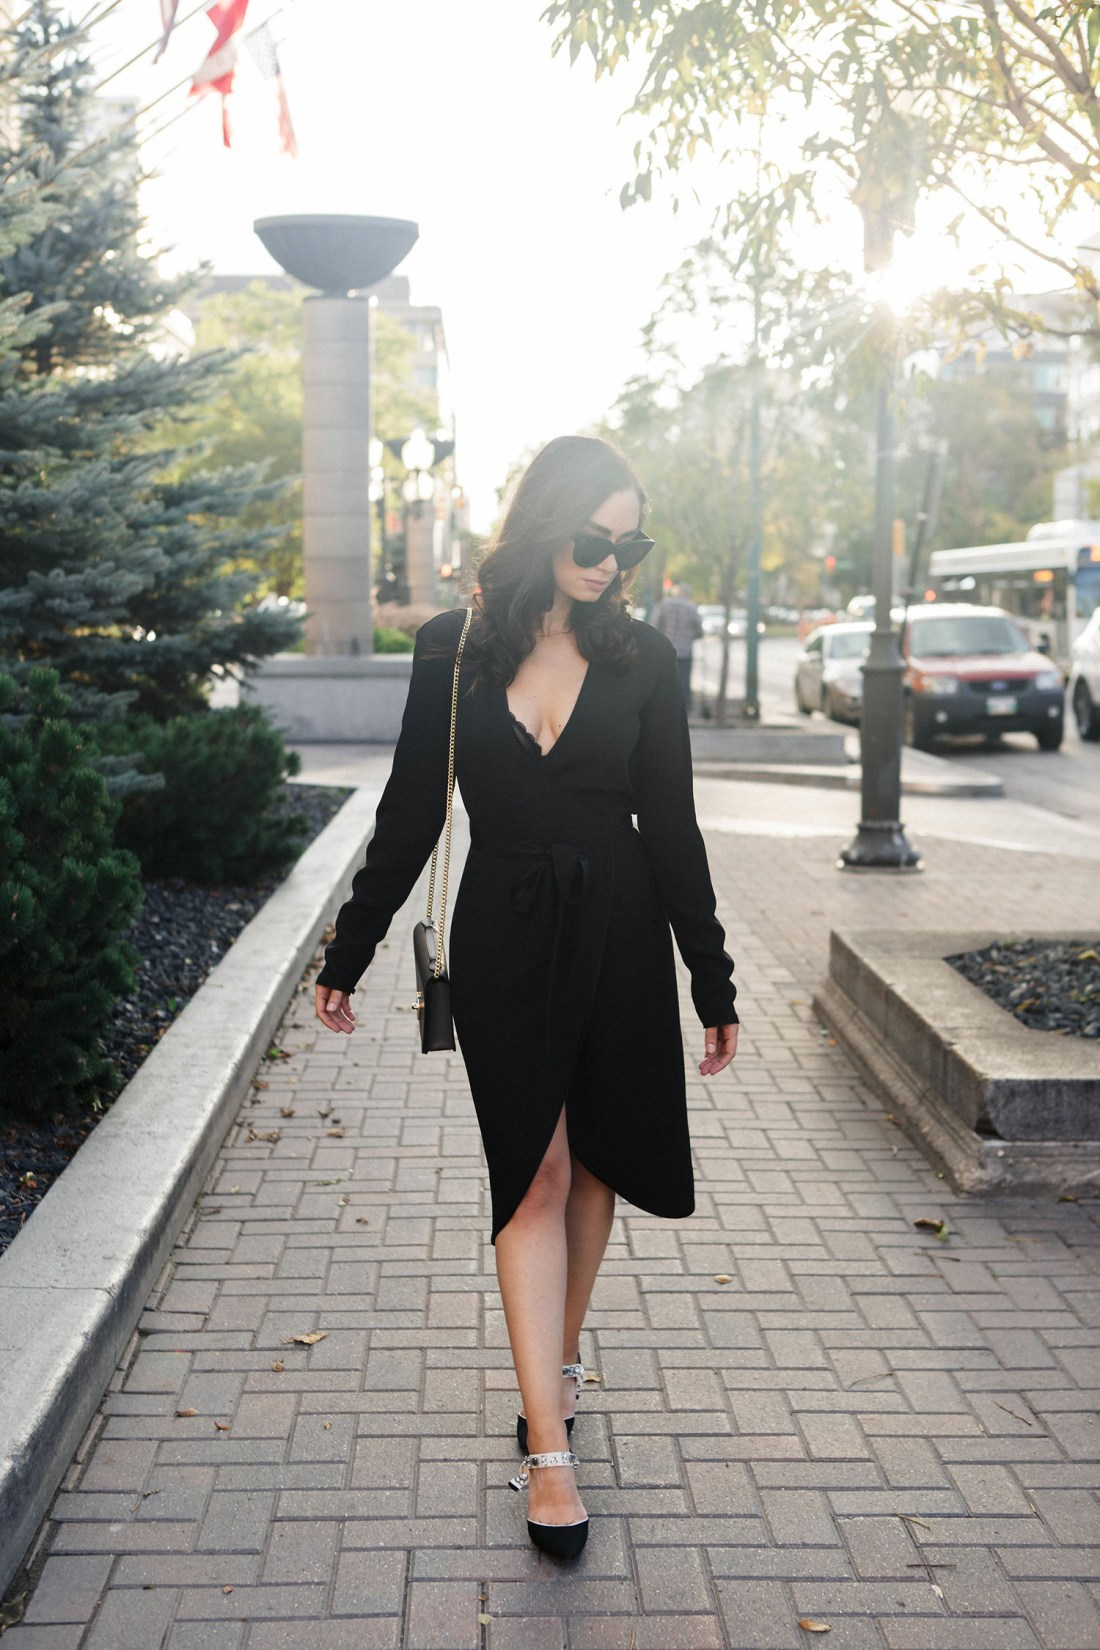 Fashion blogger Cee Fardoe of Coco & Vera walks in front of the Fort Garry Hotel in Winnipeg, wears a Rodarte x & Other Stories dress, as captured by Christa Wong Photography